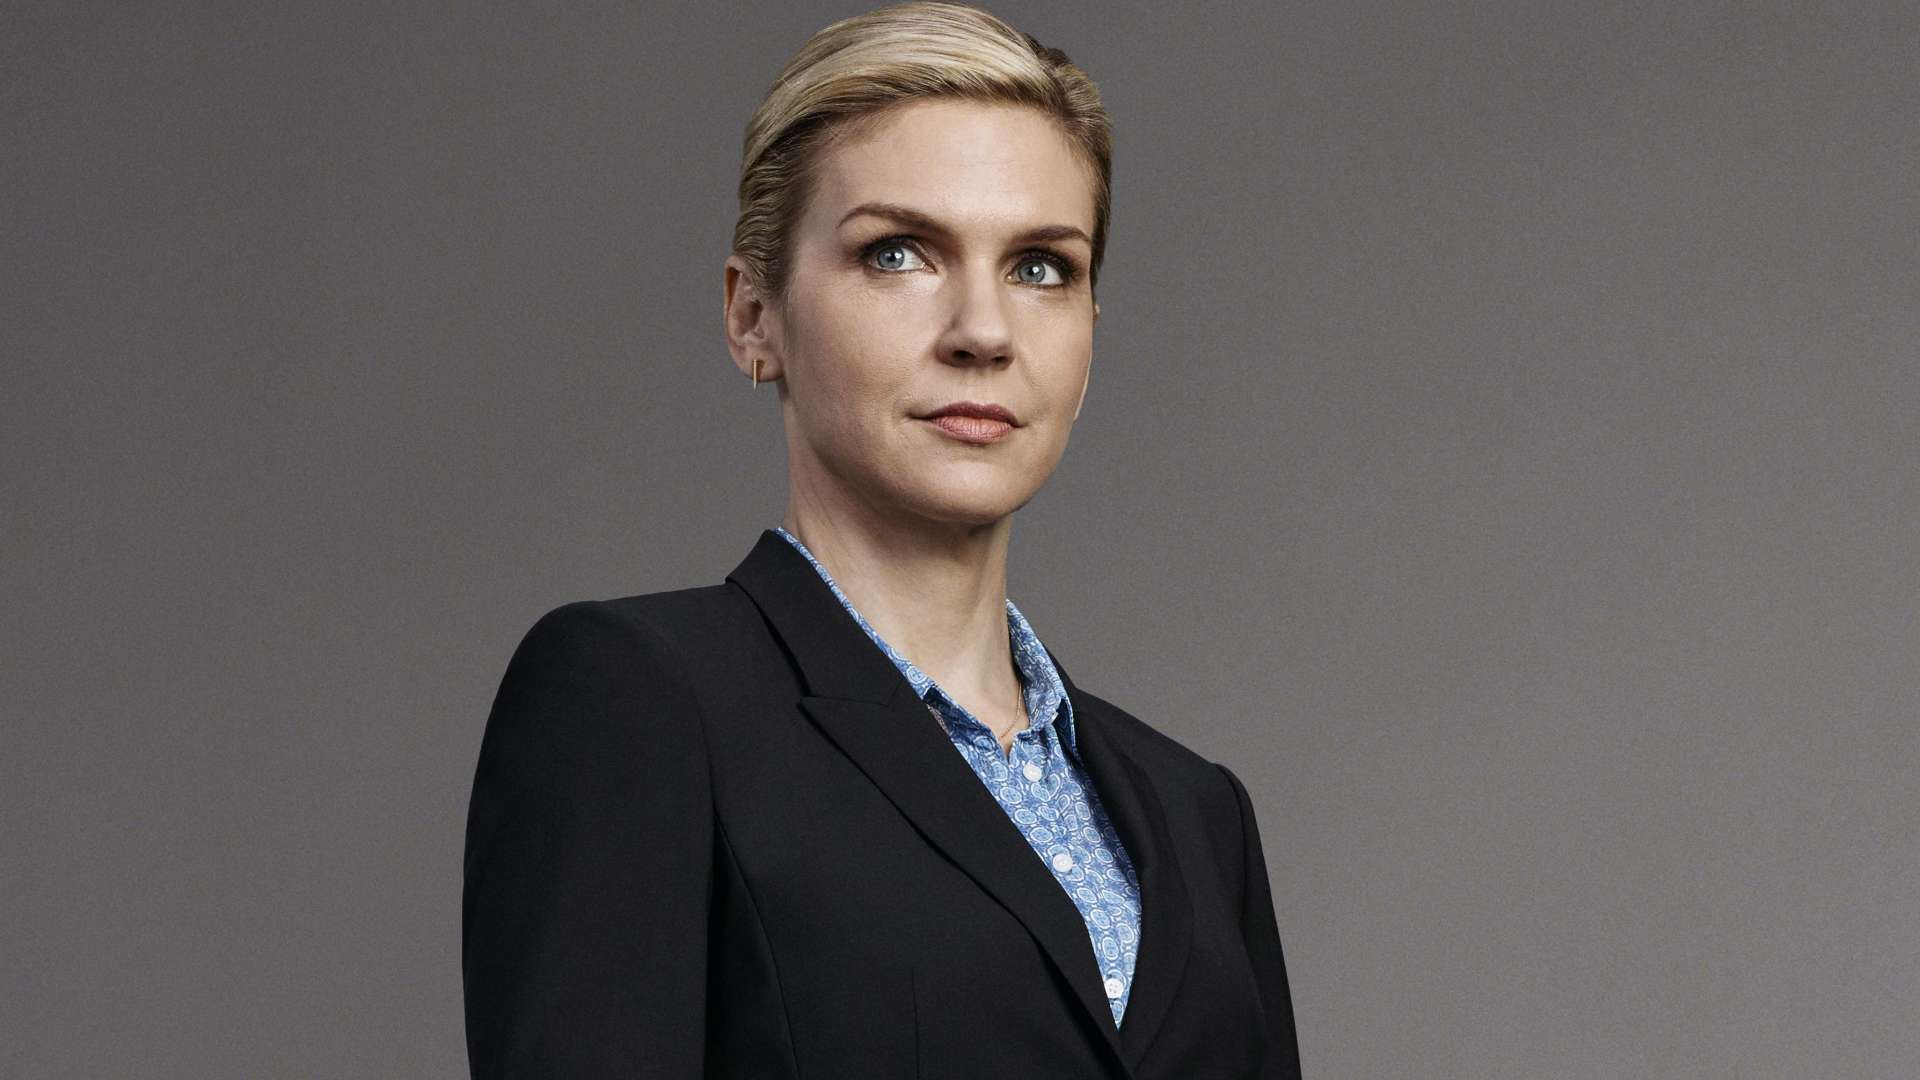 Rhea Seehorn Background